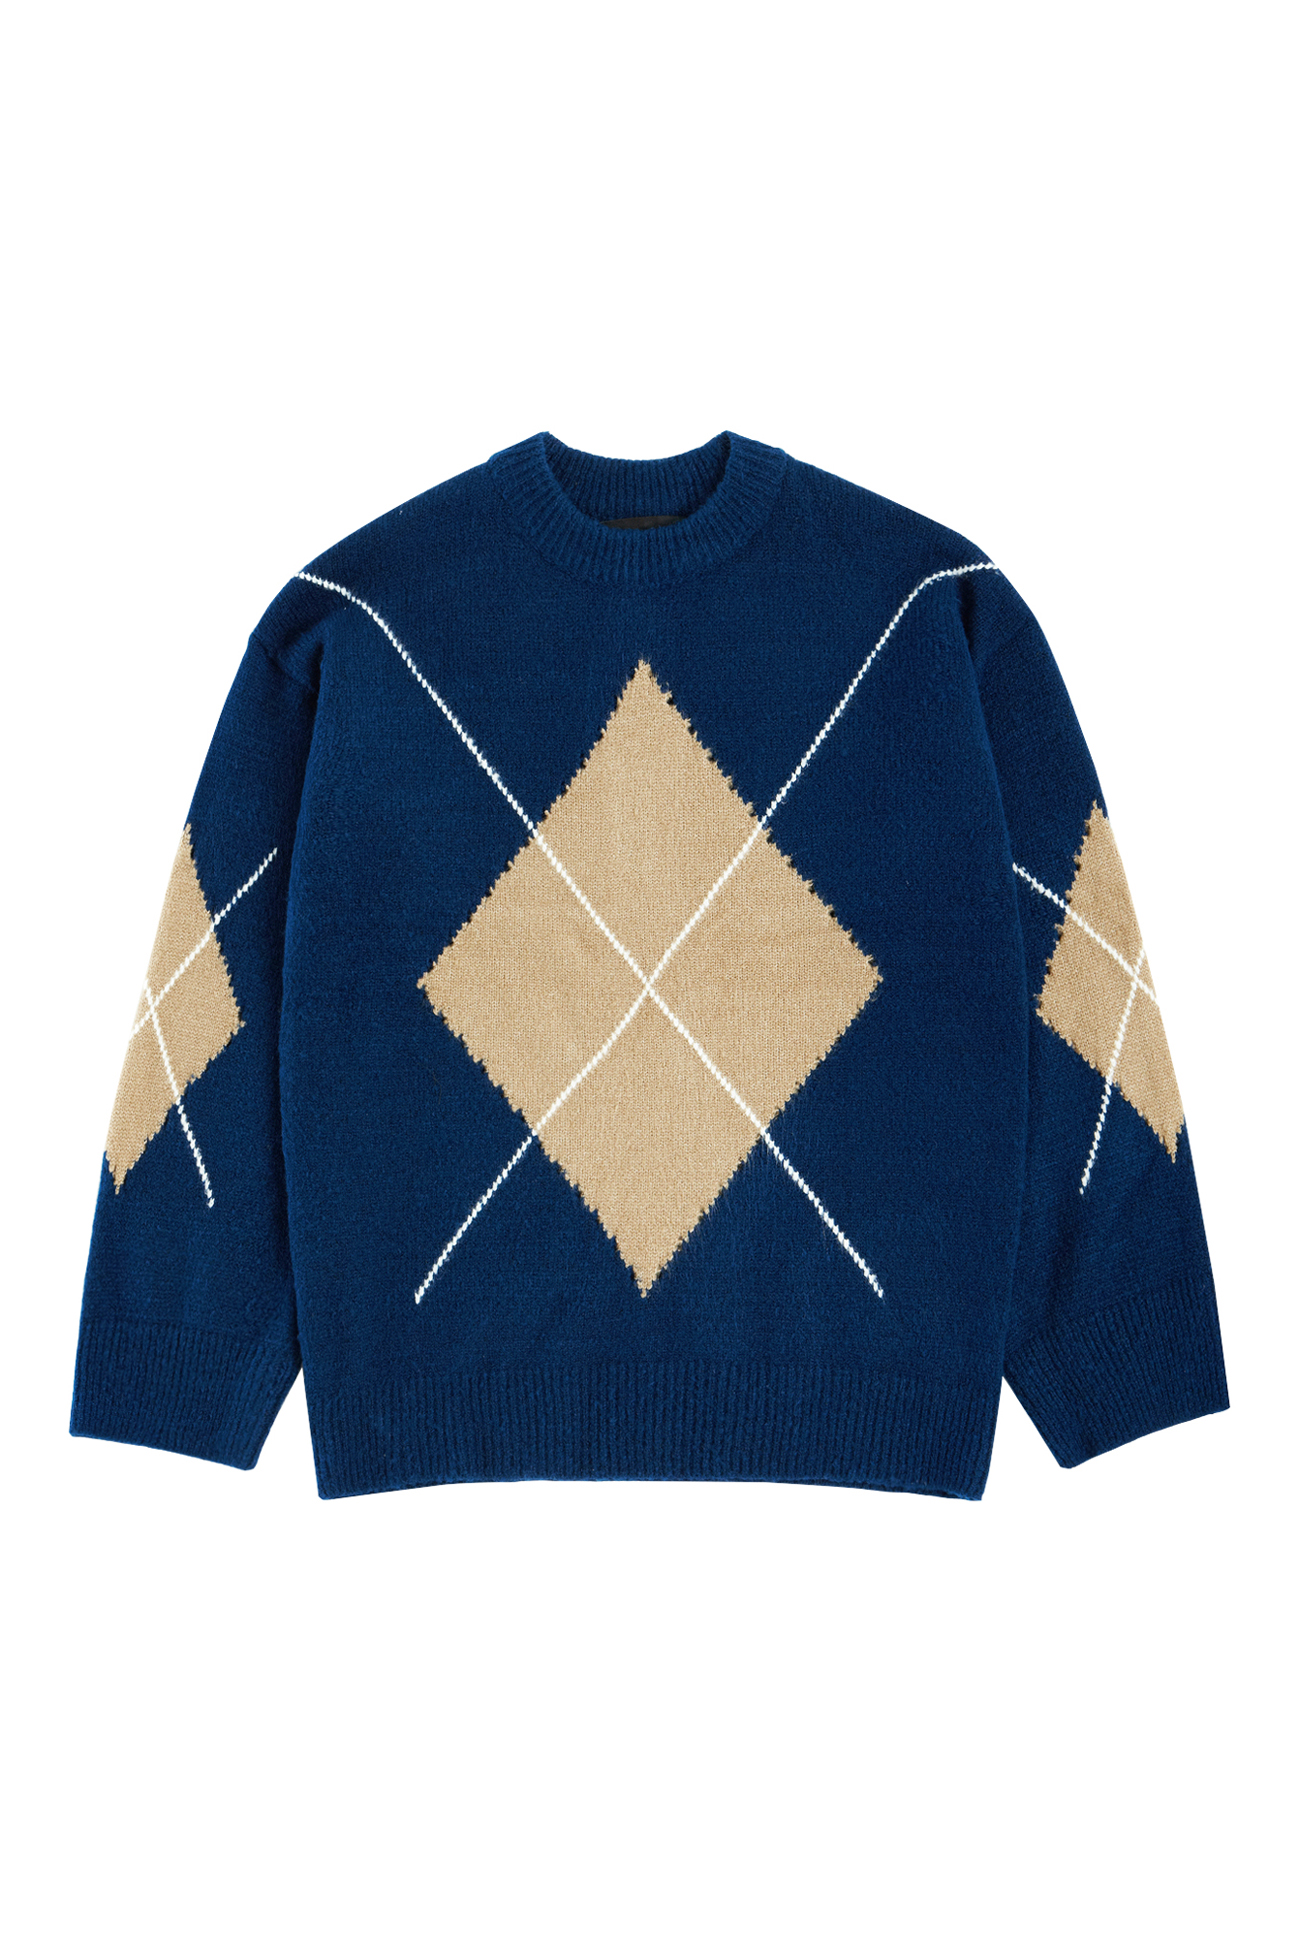 Argyle sweater navy